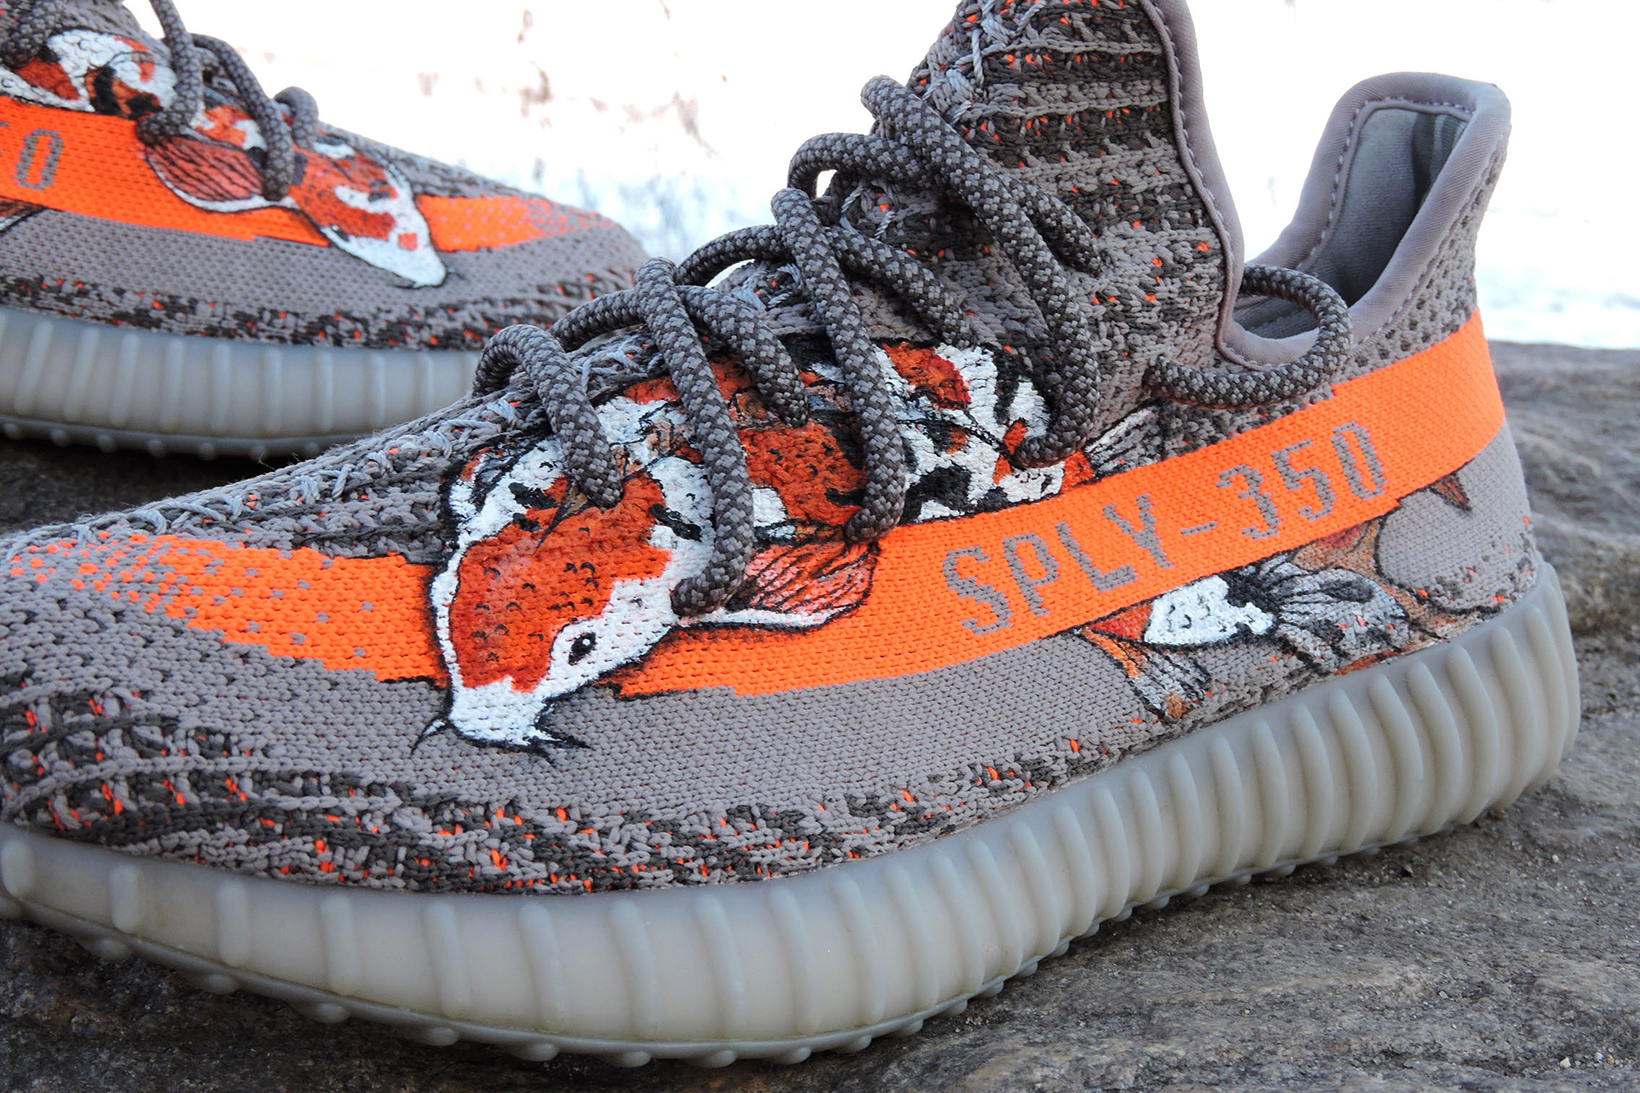 What Size 'Yeezy 350 V2 Beluga' Should I Buy